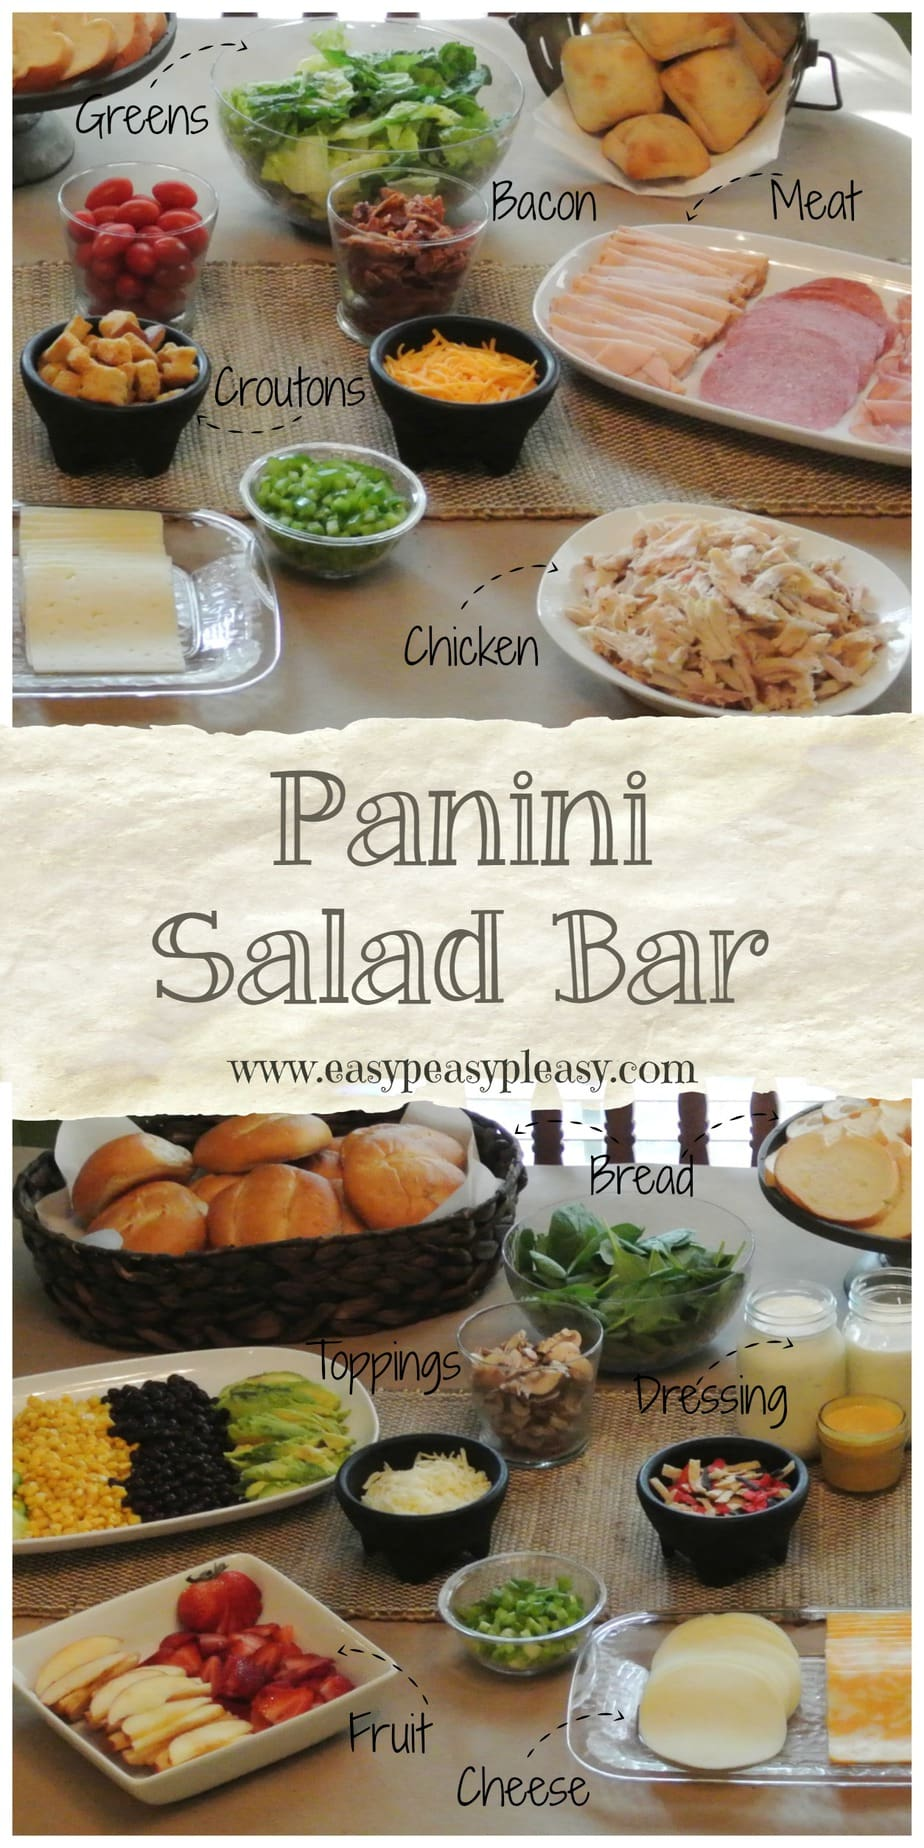 Party Food Made Easy! Throw a party and make a Panini Salad Bar!